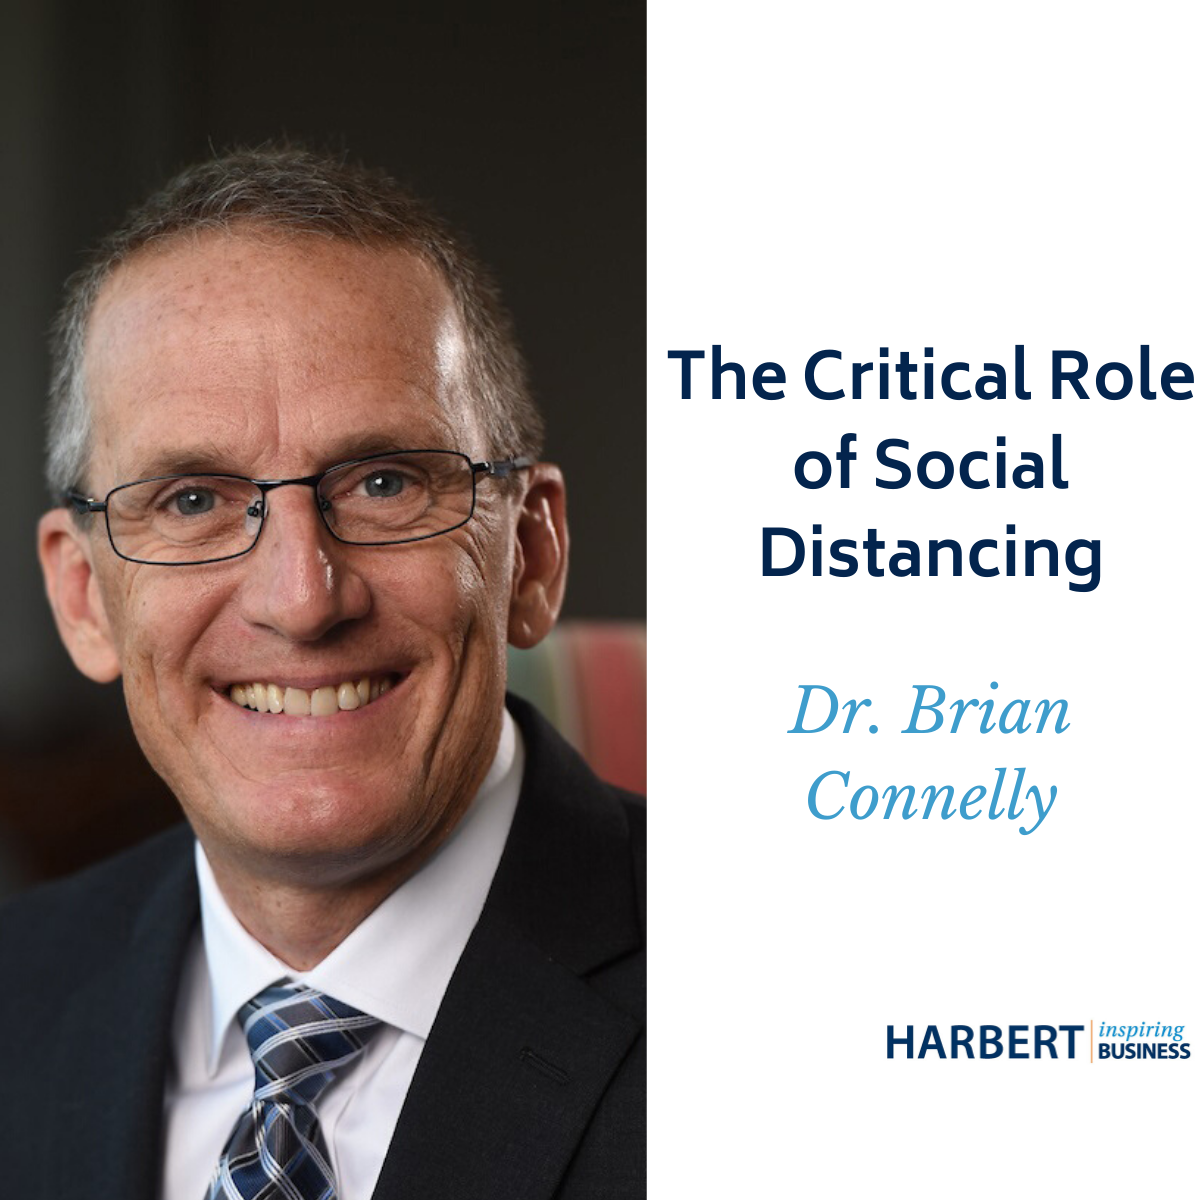 Management professor shares the impacts of social distancing